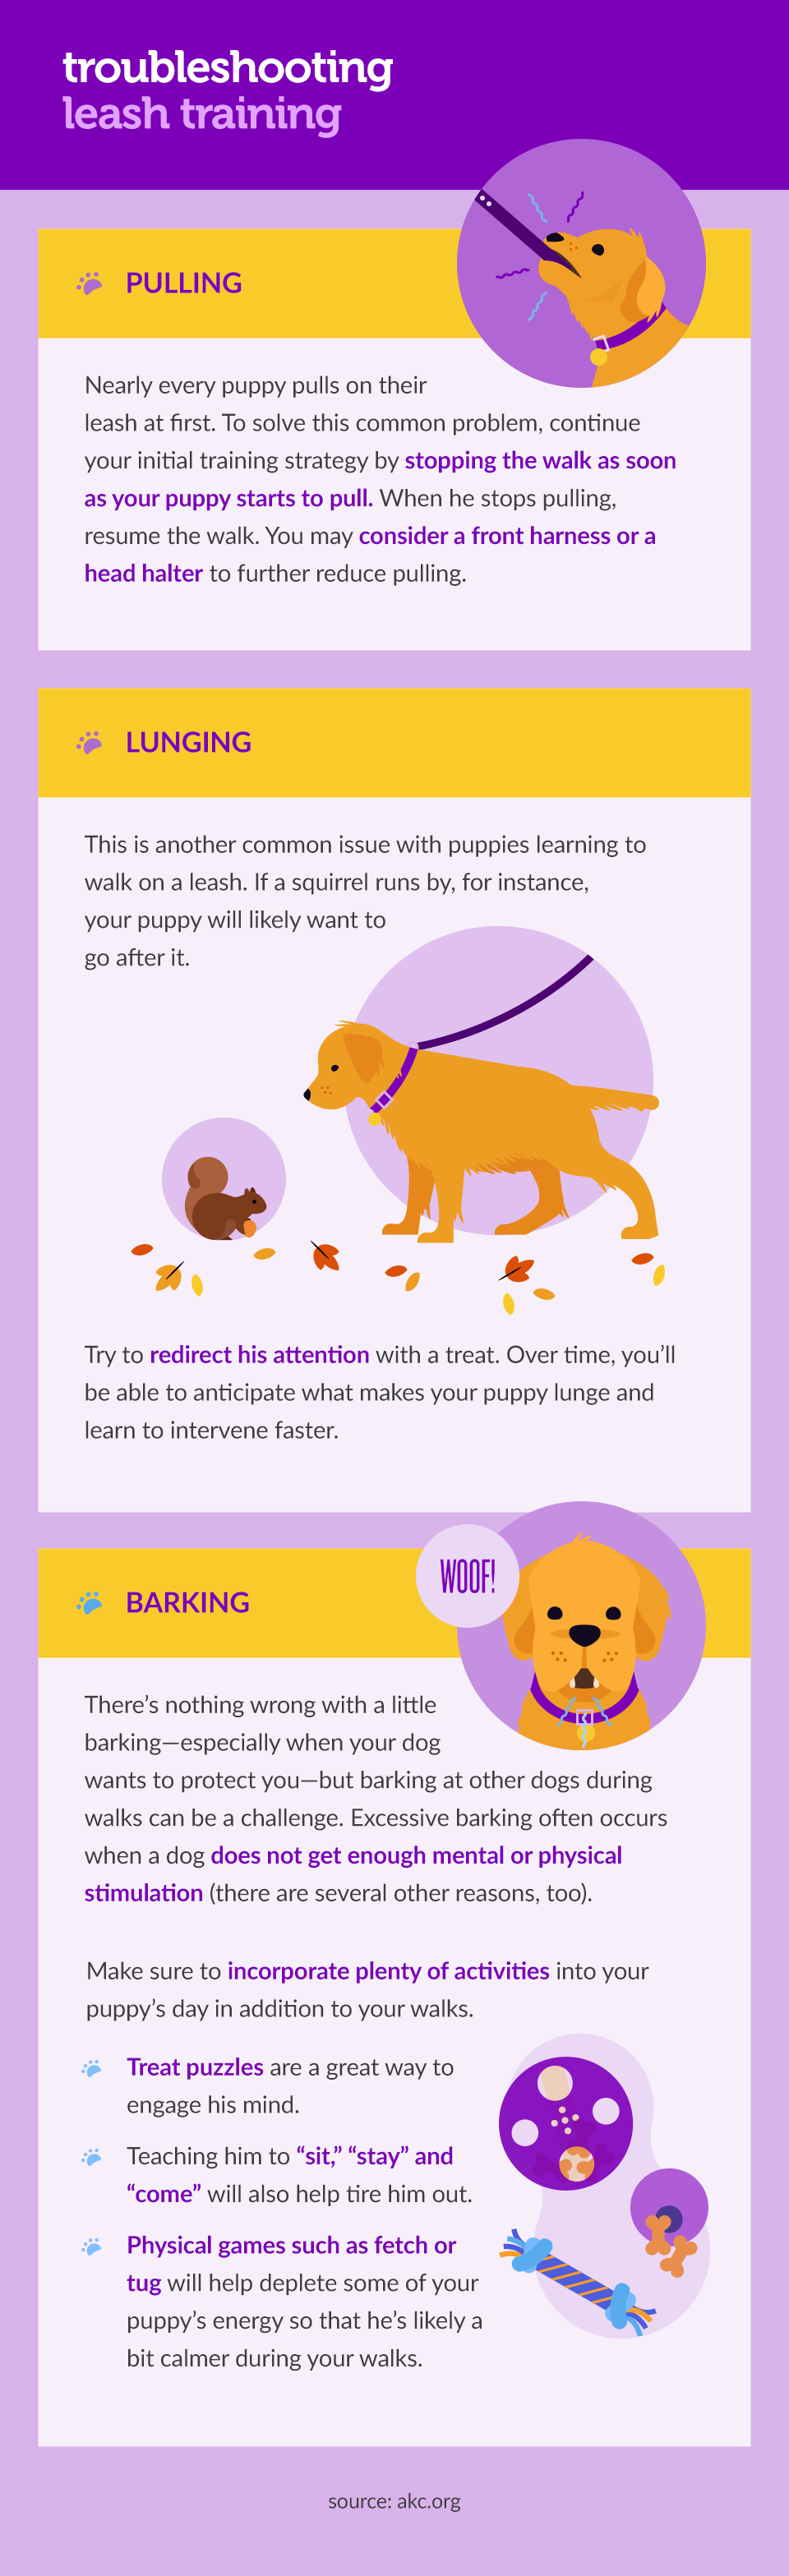 how-to-leash-train-your-puppy-003